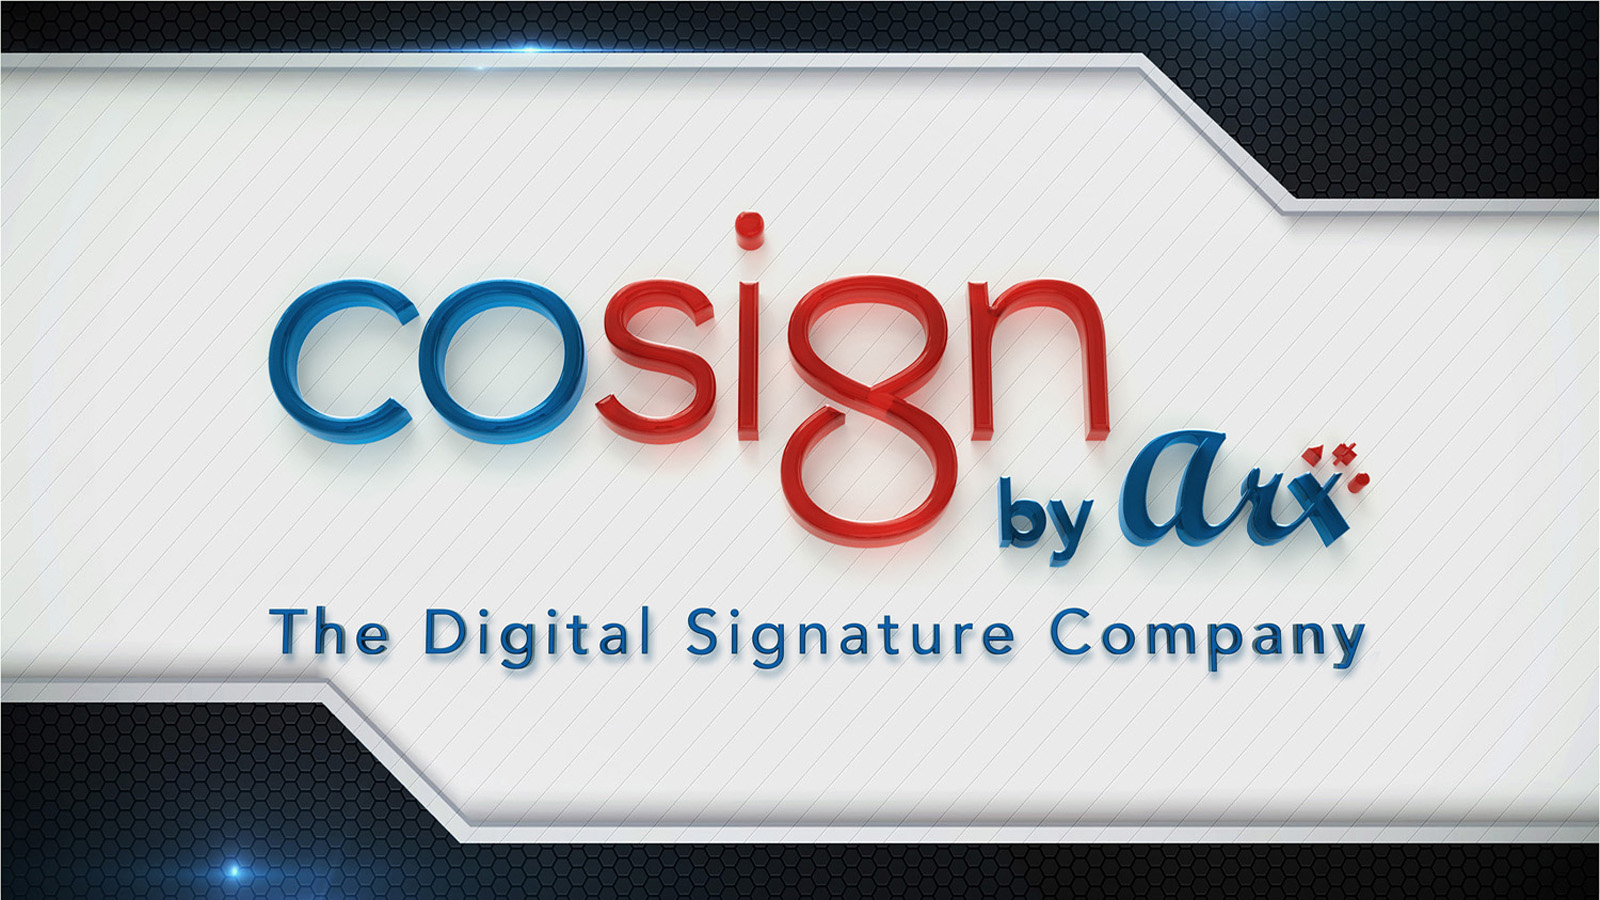 cosign by arx